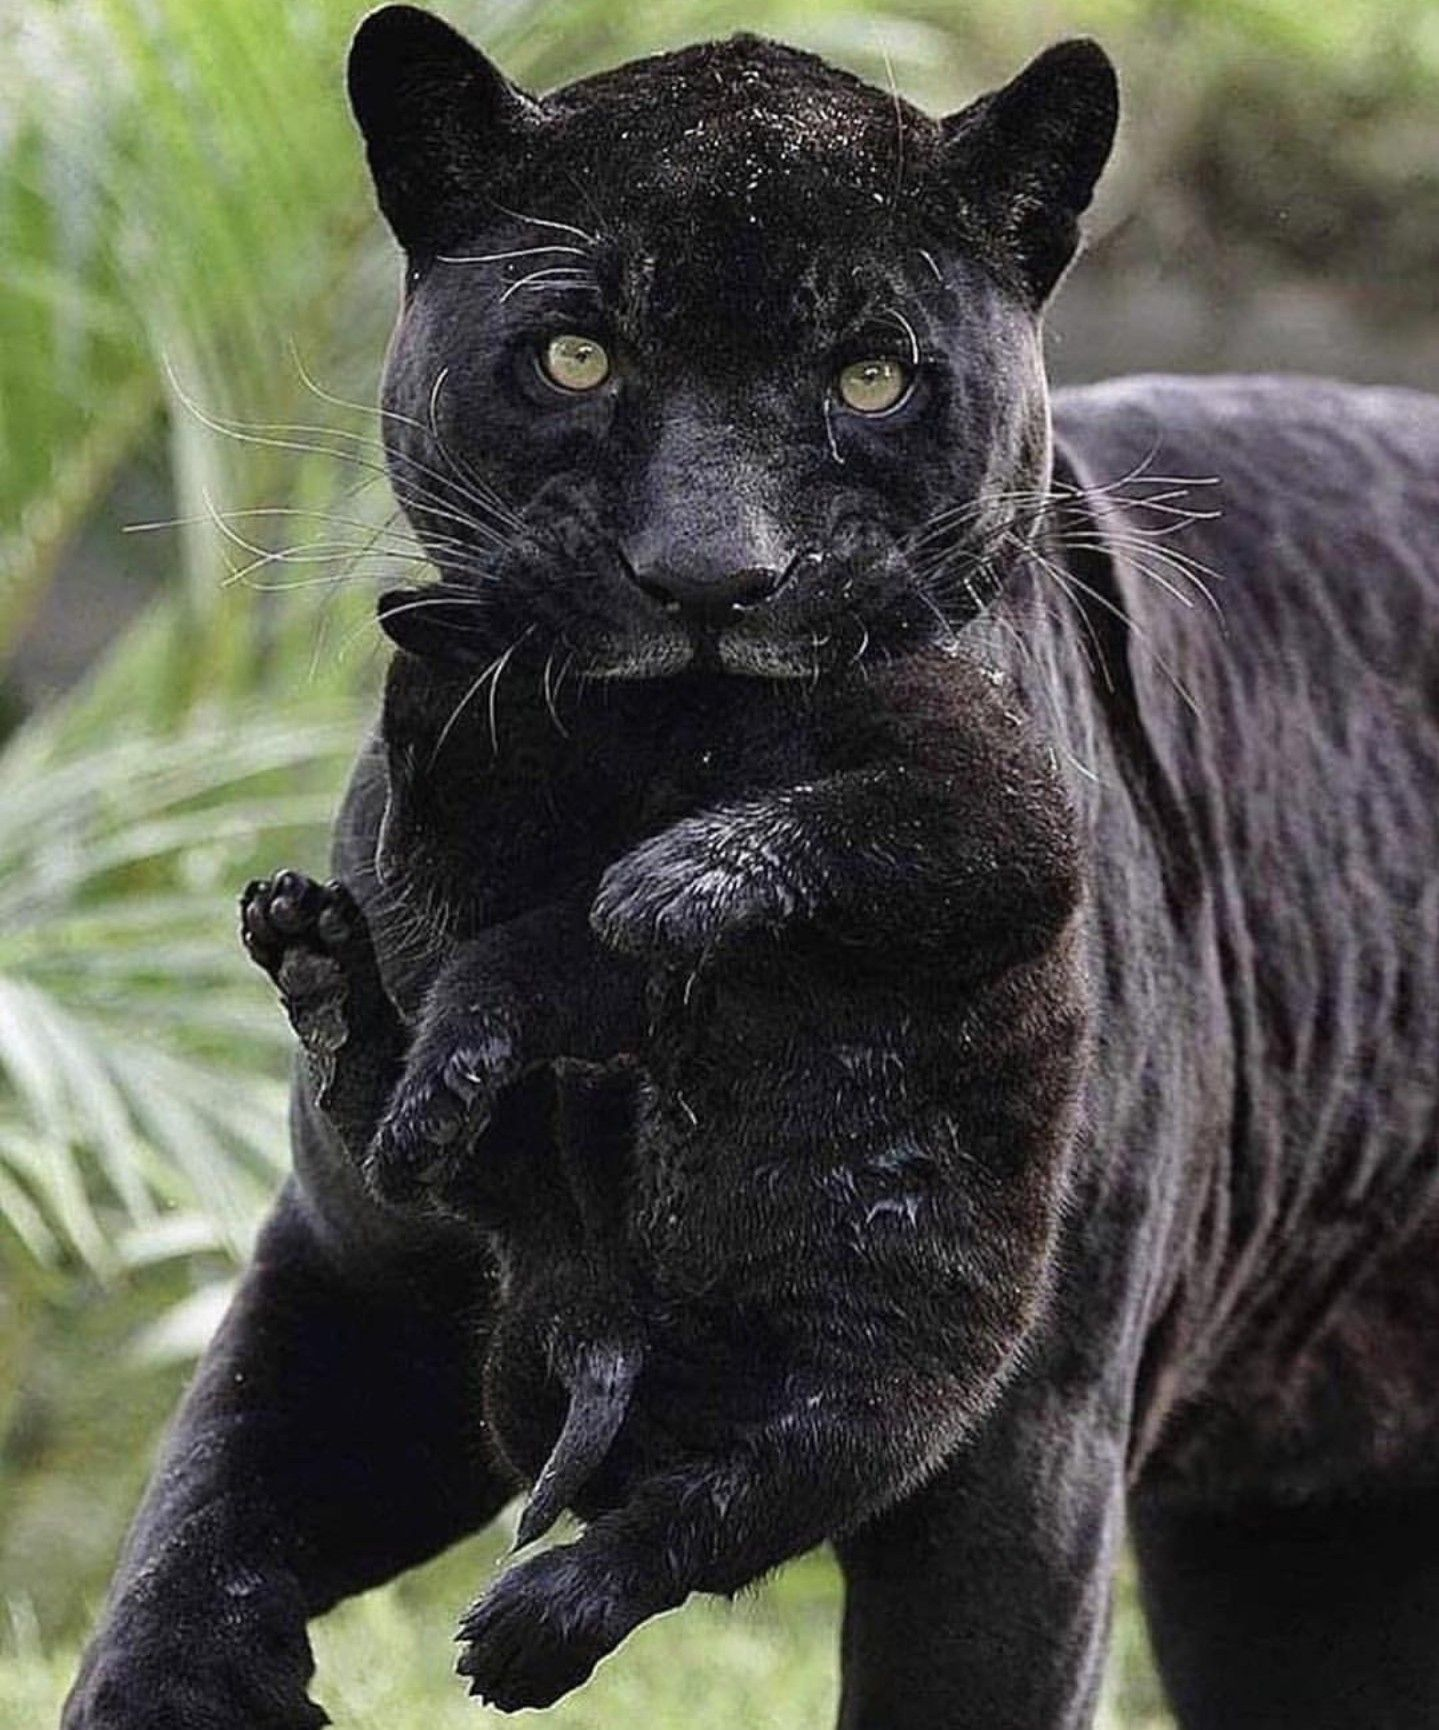 Pin by Honey Bee on Black =^..^= Black jaguar, Animals